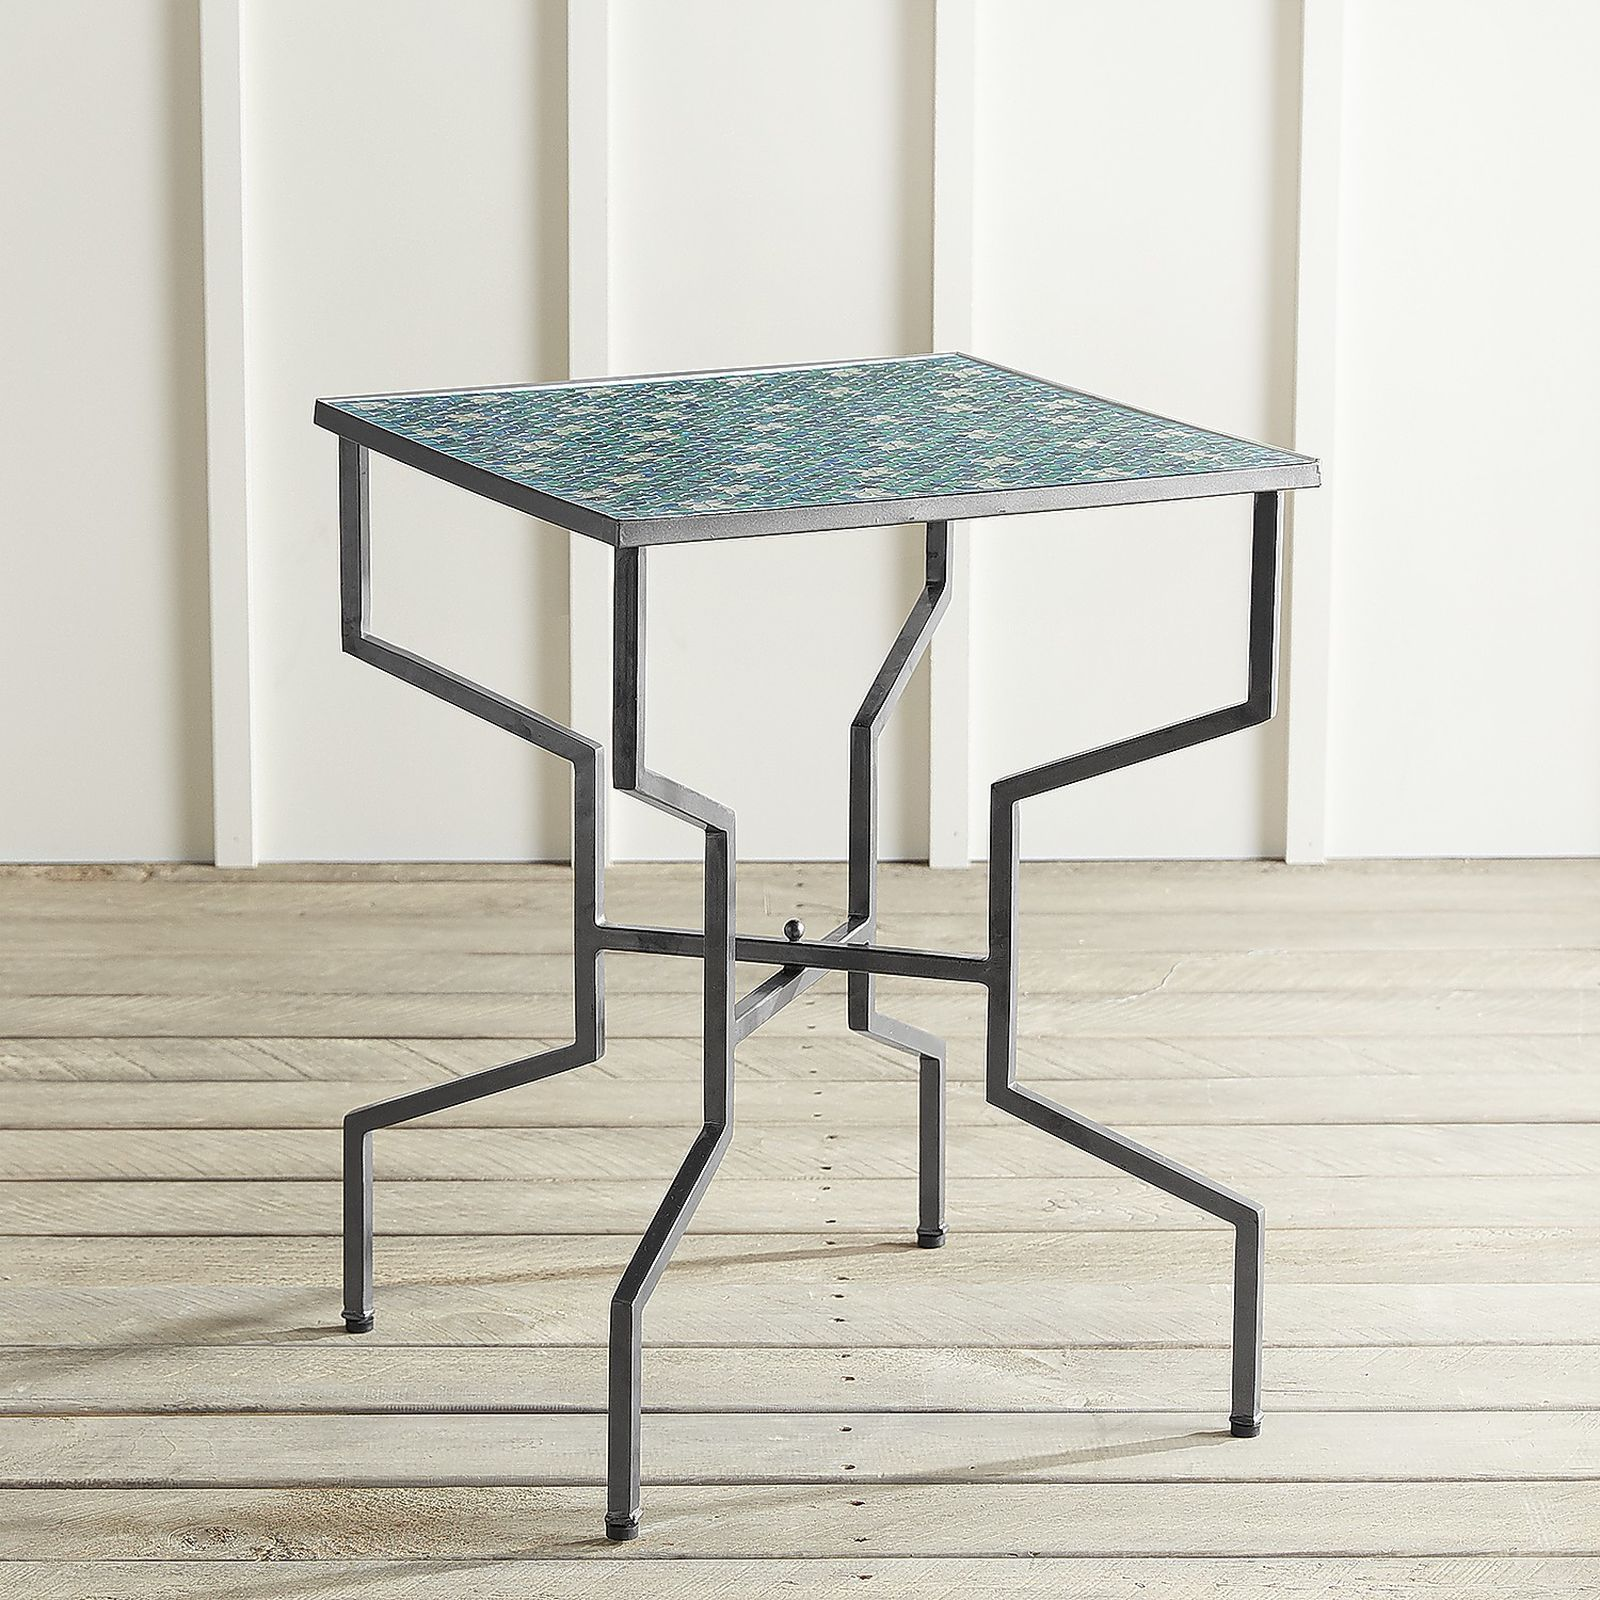 julian mosaic accent table side tables tiles indoor with ingenious design and mediterranean inspired motif our has hand applied tile top metal base equally blue runner grey coffee